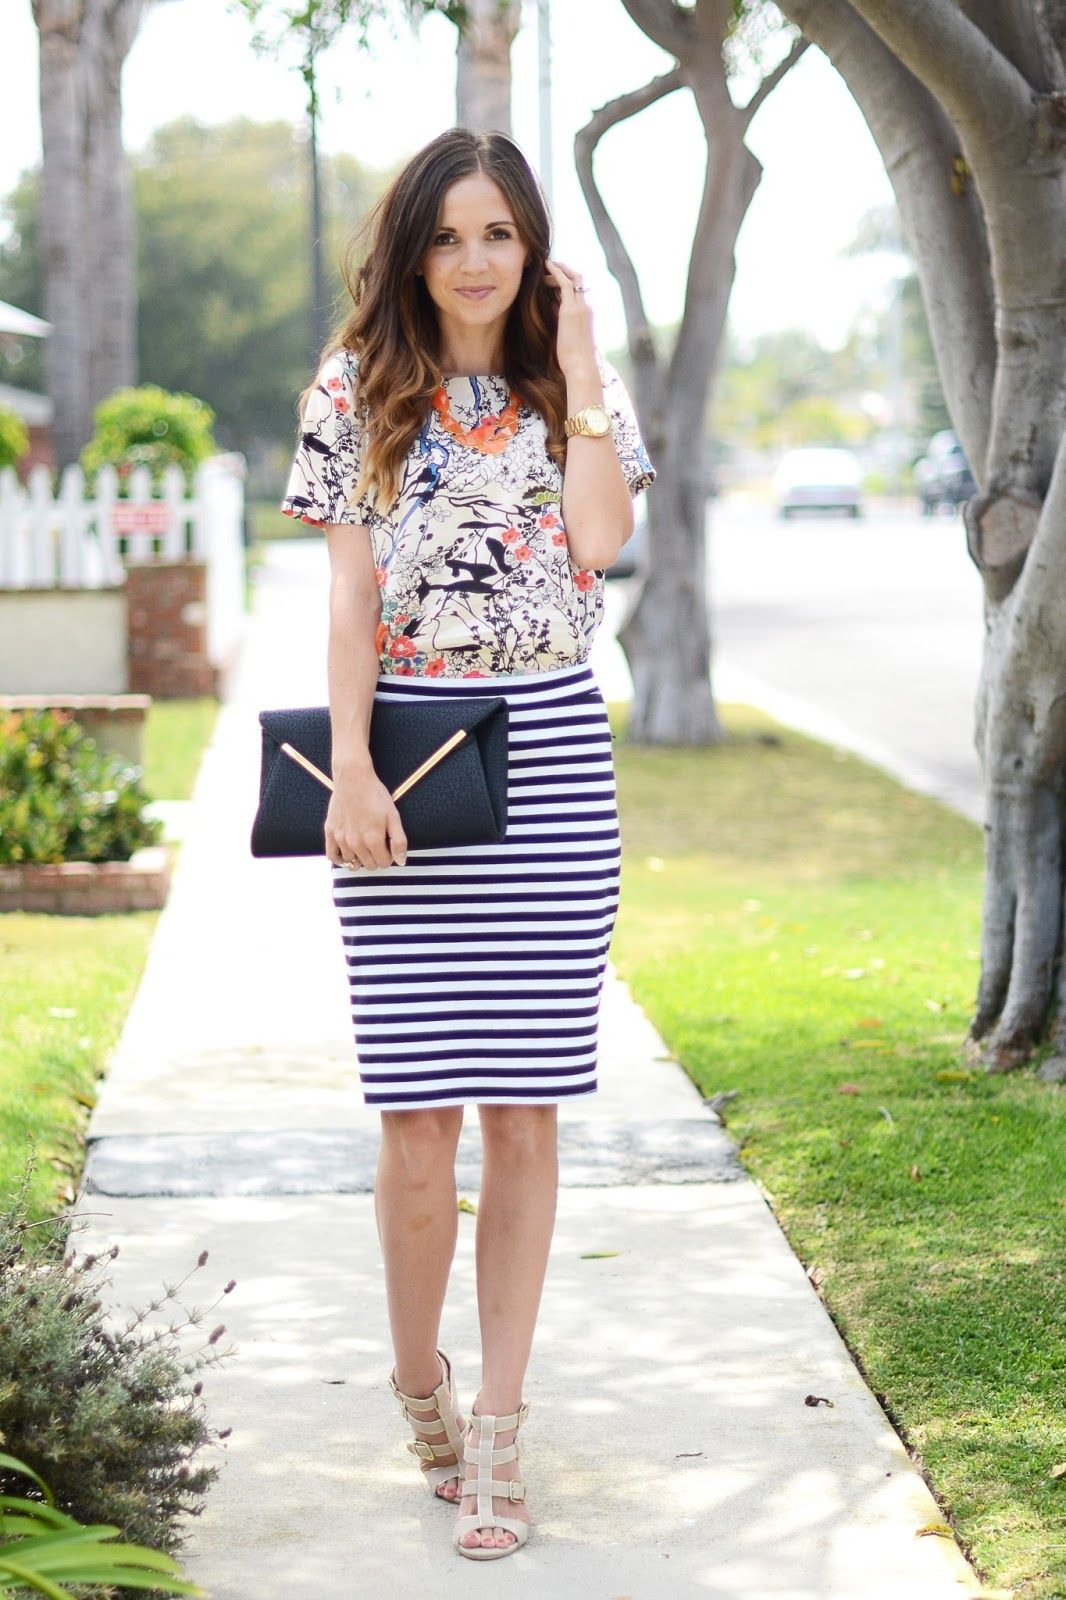 6dcc1be7e3 Mixing Prints: Abstract Print Blouse, Stripe Pencil Skirt, Casual Wedges,  Bright Necklace